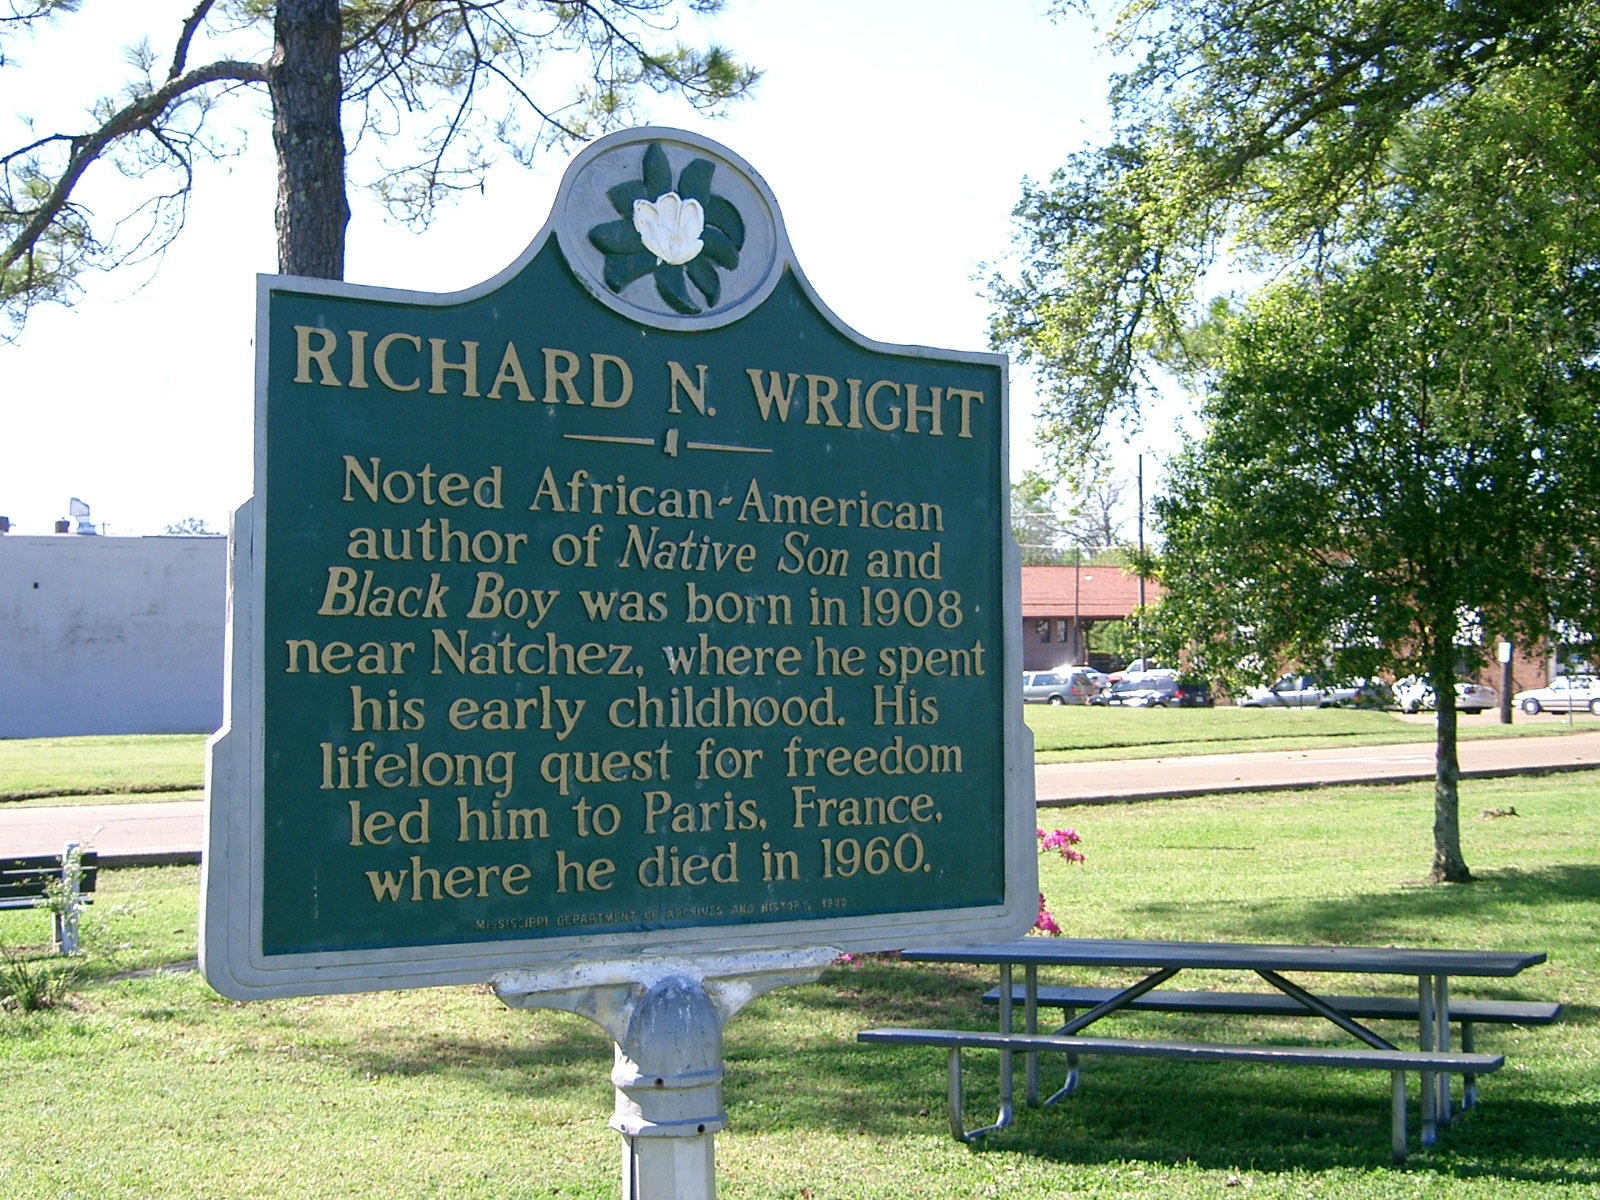 3. Visit where Richard Wright grew up